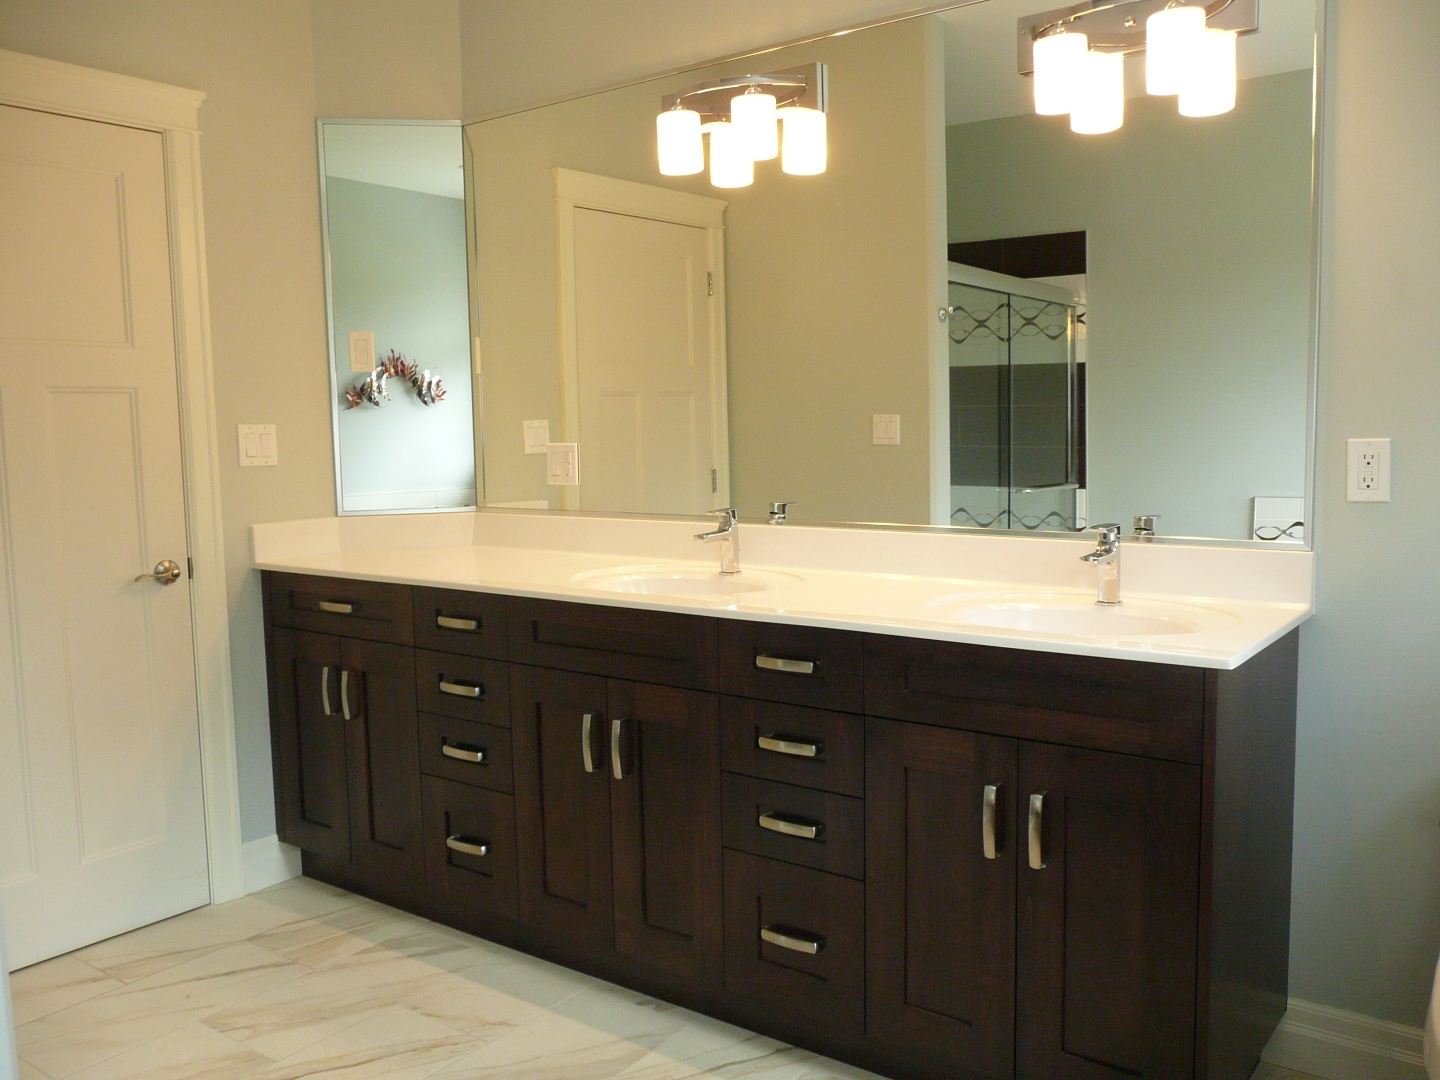 Replace Bathroom Sink >> Cultured Marble Bathroom Sinks and Vanity Tops – Precision Marble